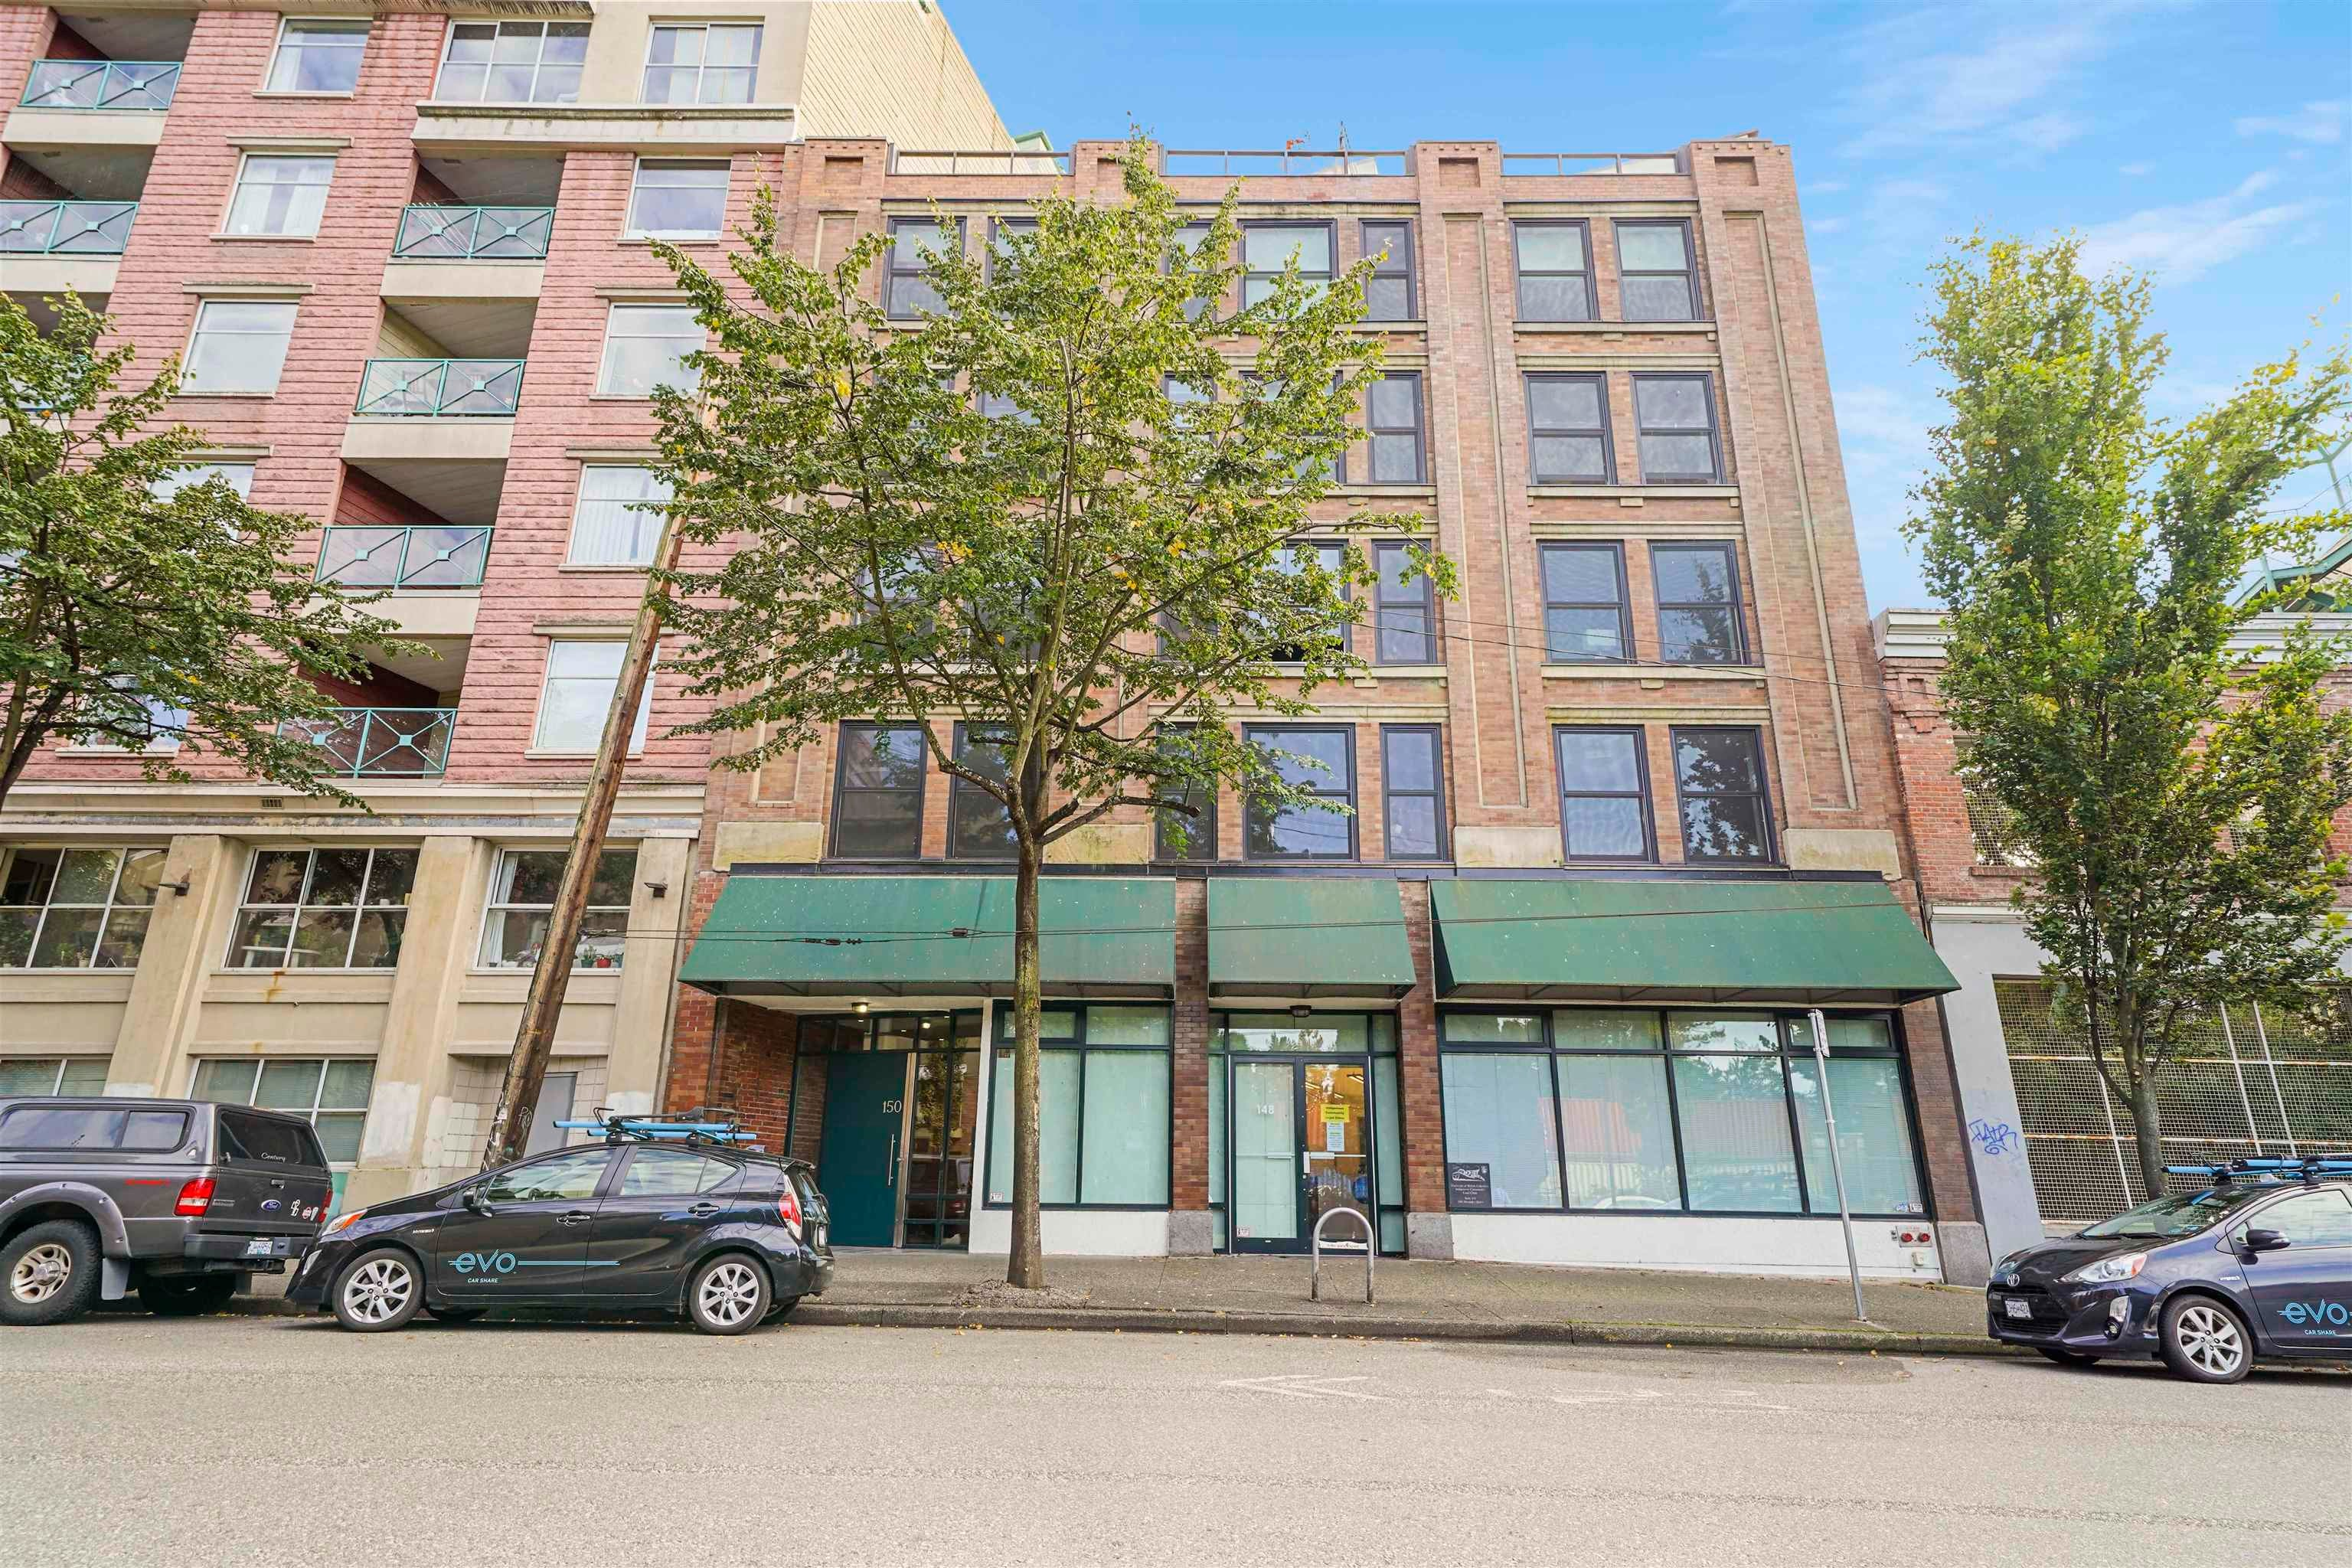 201 150 ALEXANDER STREET - Downtown VE Apartment/Condo for sale, 1 Bedroom (R2620191)